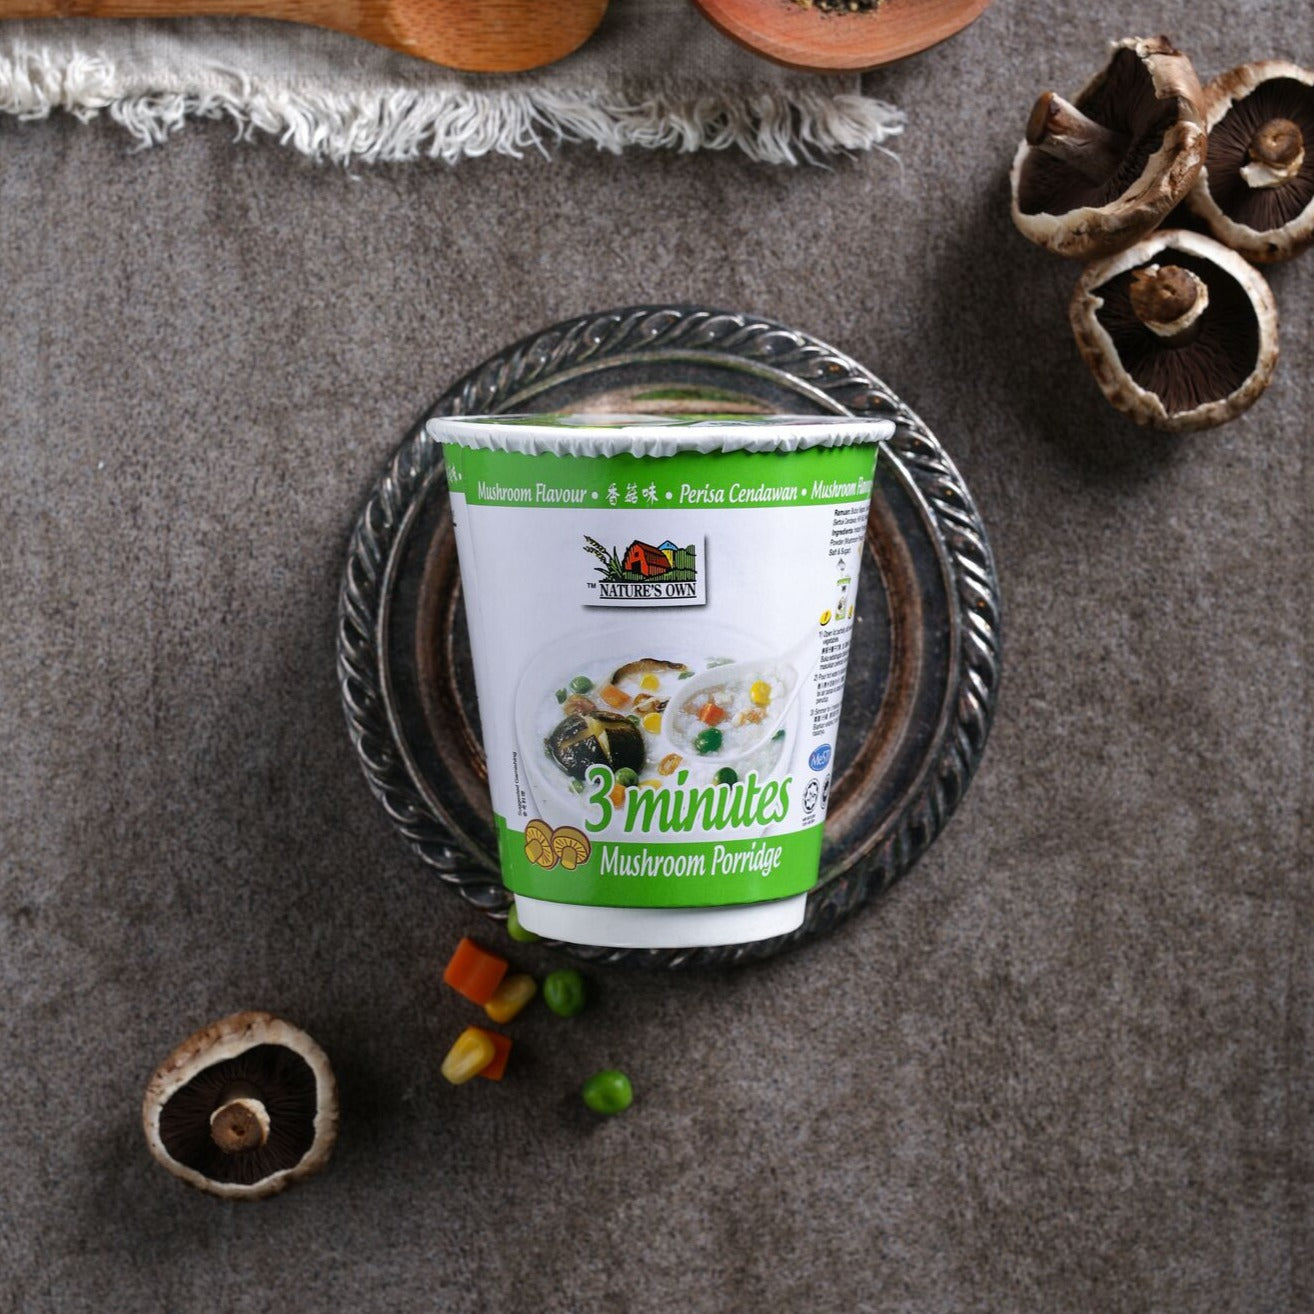 Nature's Own 3 Minutes Porridge - Mushroom